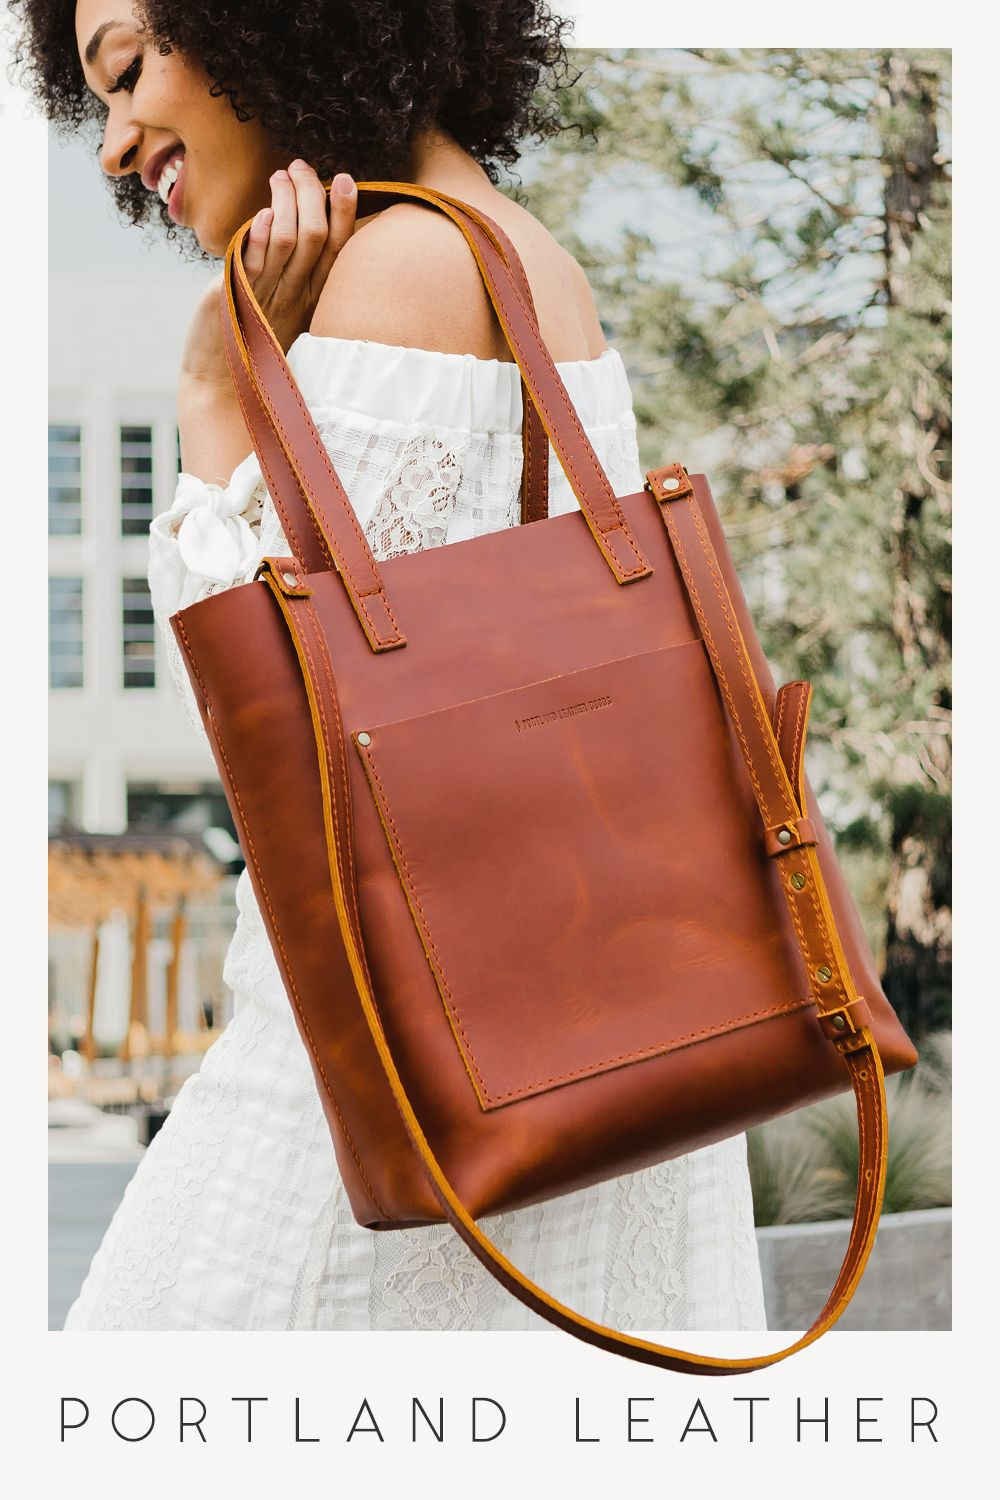 Womens Leather Tote Bag Mothers Day Gift Leather Tote Bag for Women Italian Leather Handmade Genuine Leather Tote Bag Leather Tote